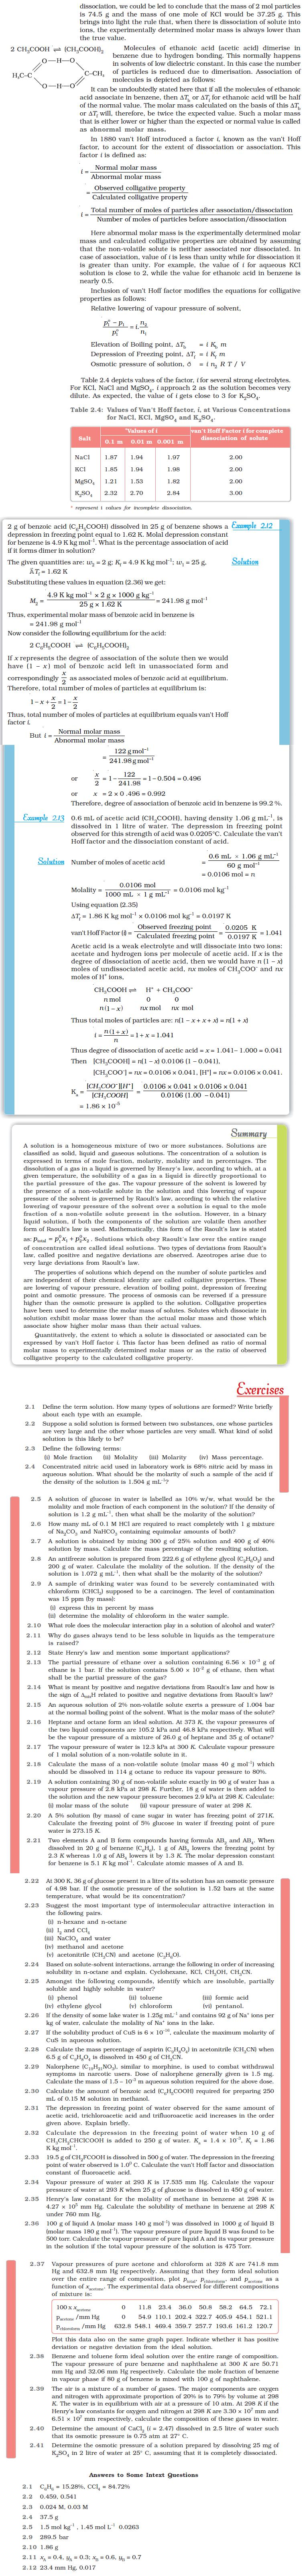 NCERT Class XII Chemistry Chapter 2 - Solutions